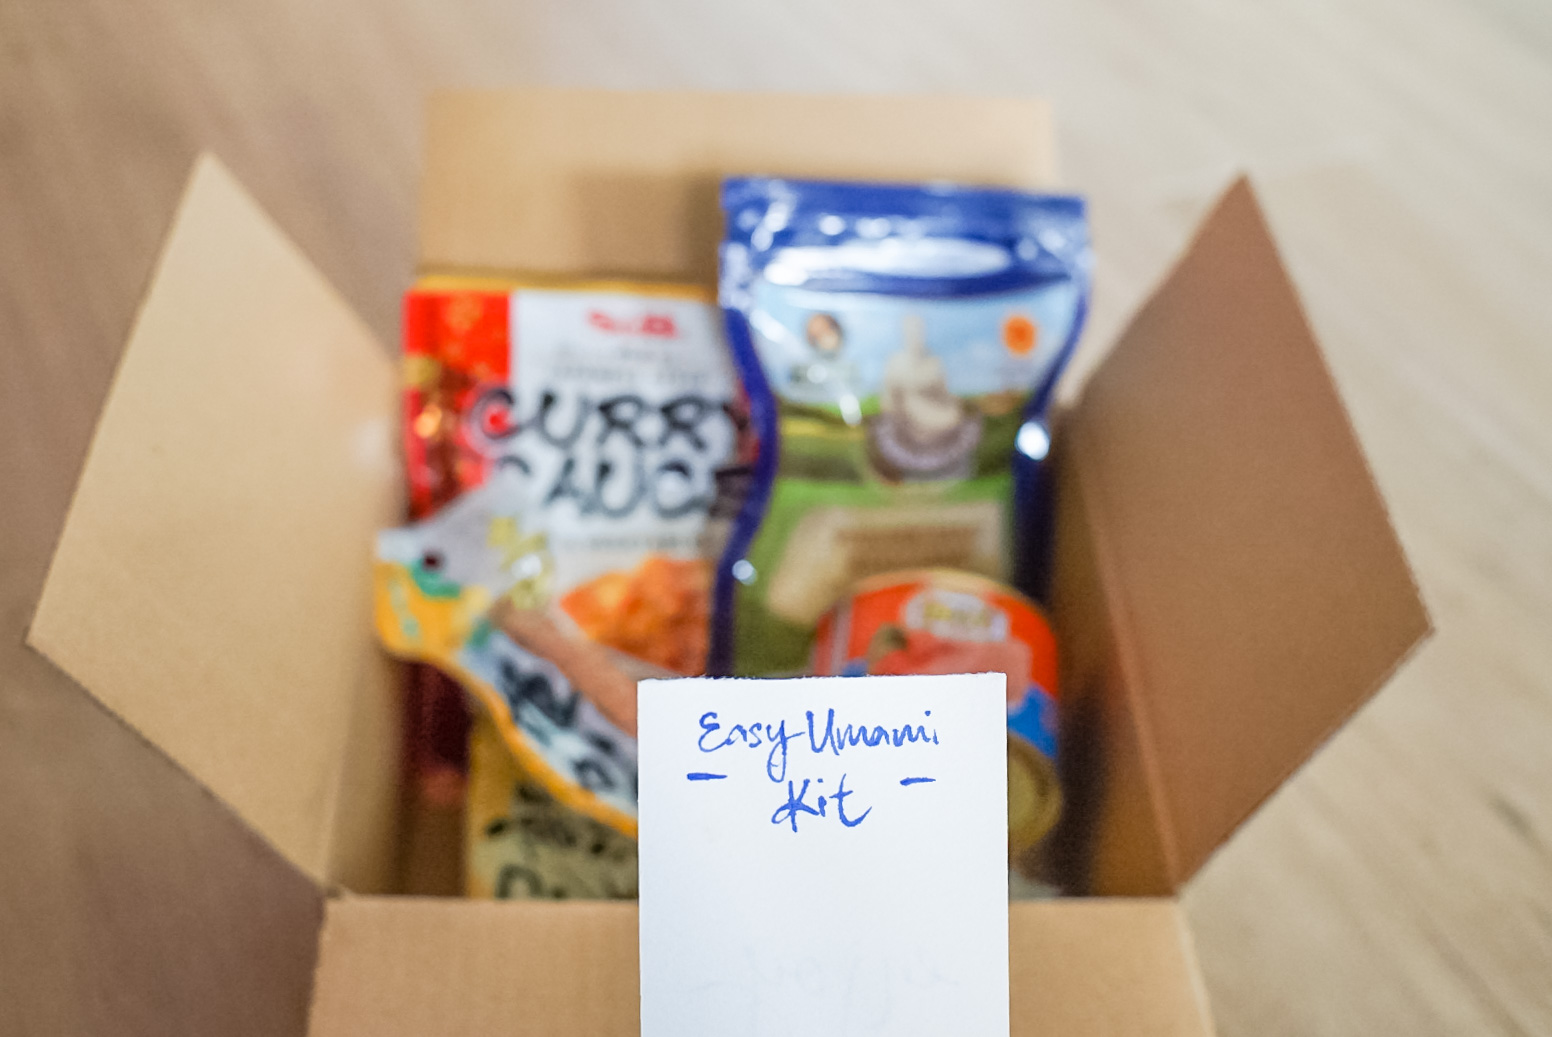 The easy umami kit - a great gift for $15.